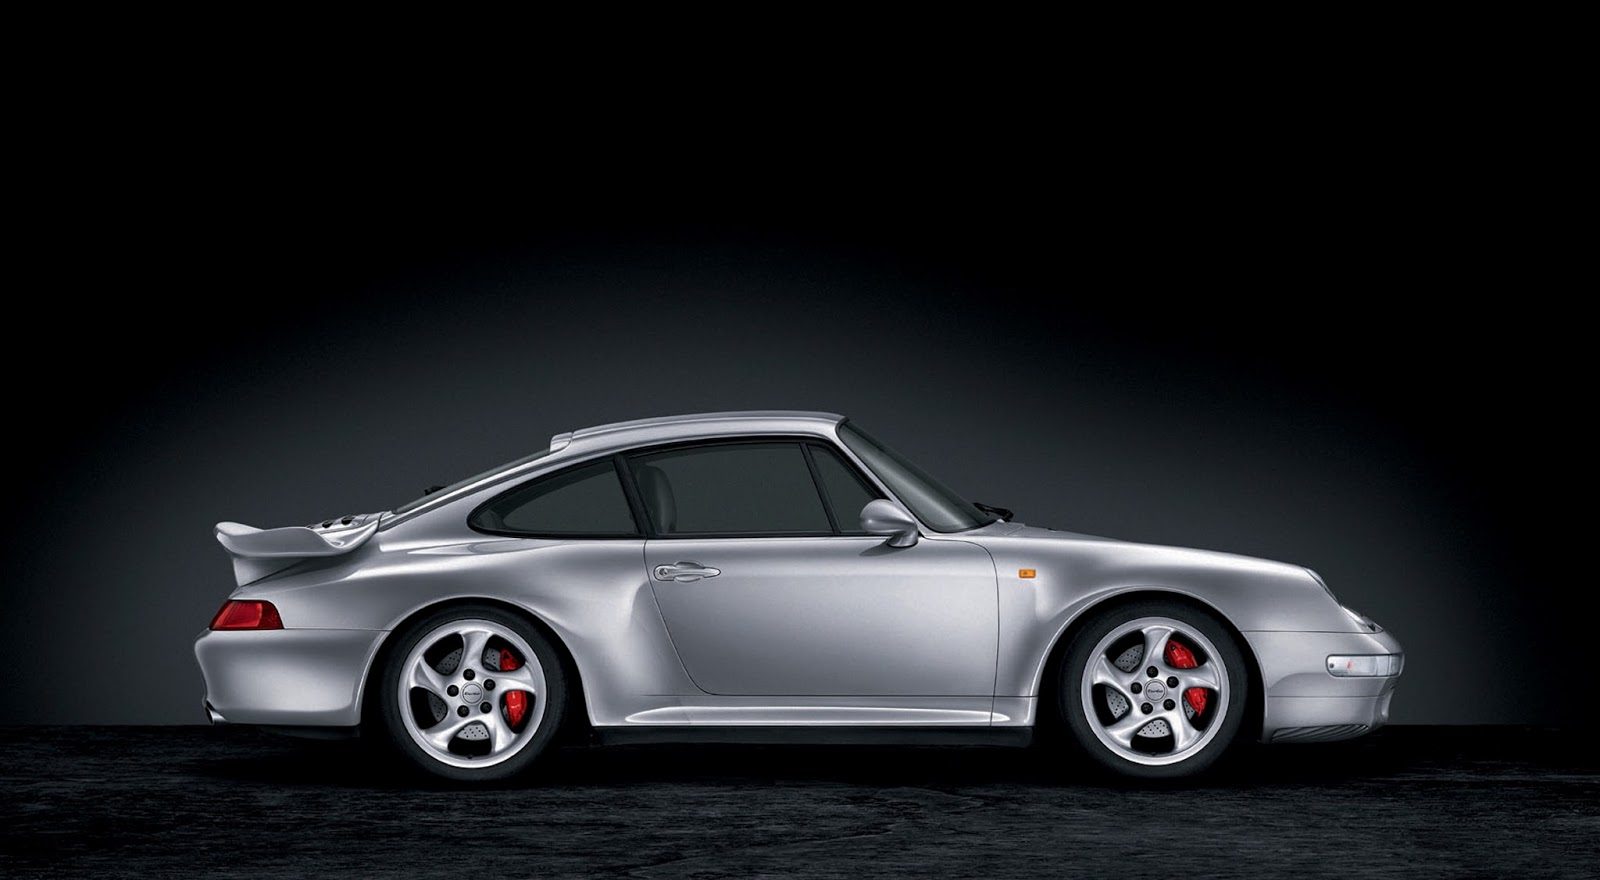 speedmonkey porsche 911 turbo pictorial history from 1974 to 2013. Black Bedroom Furniture Sets. Home Design Ideas